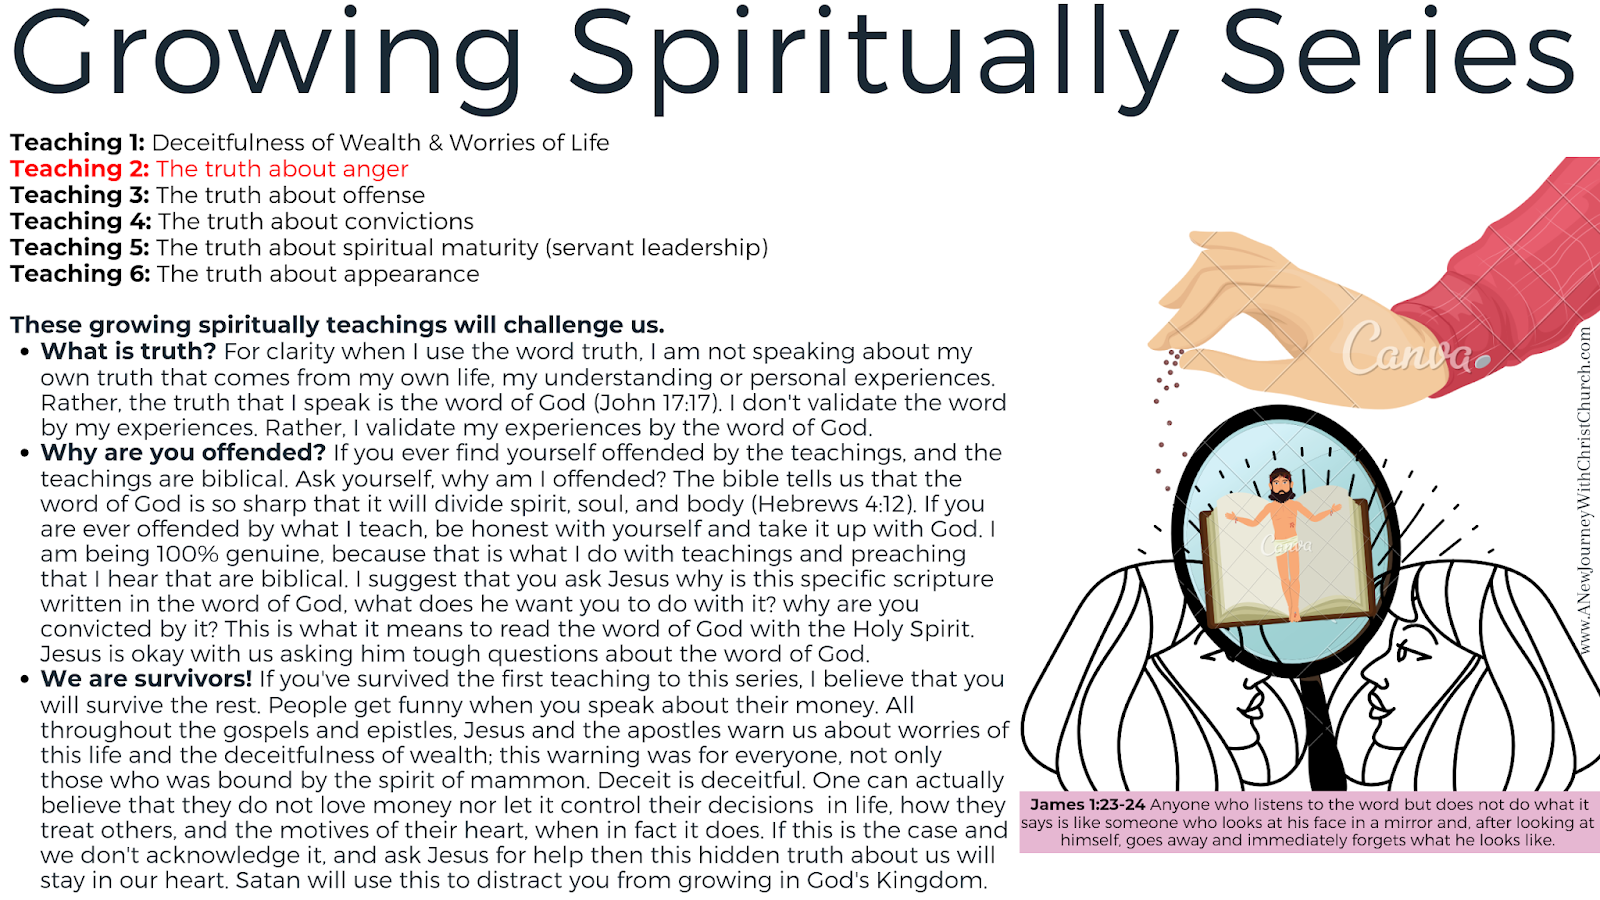 Growing Spiritually 2 of 6: The Truth About Anger